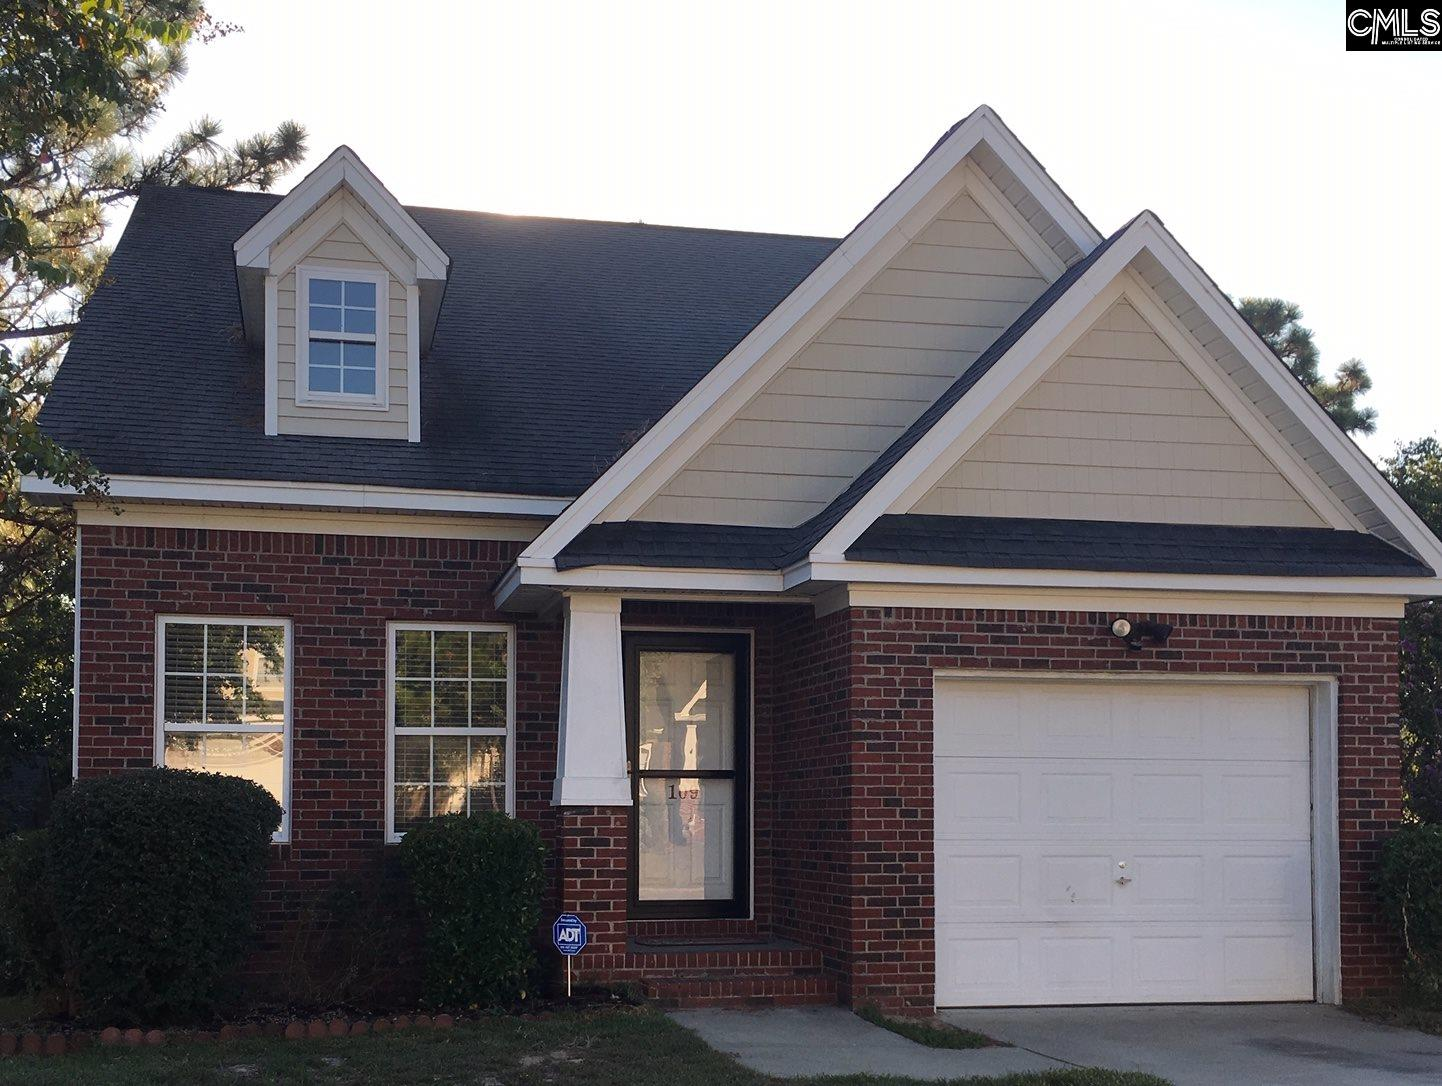 109 Sweetoak Columbia, SC 29223